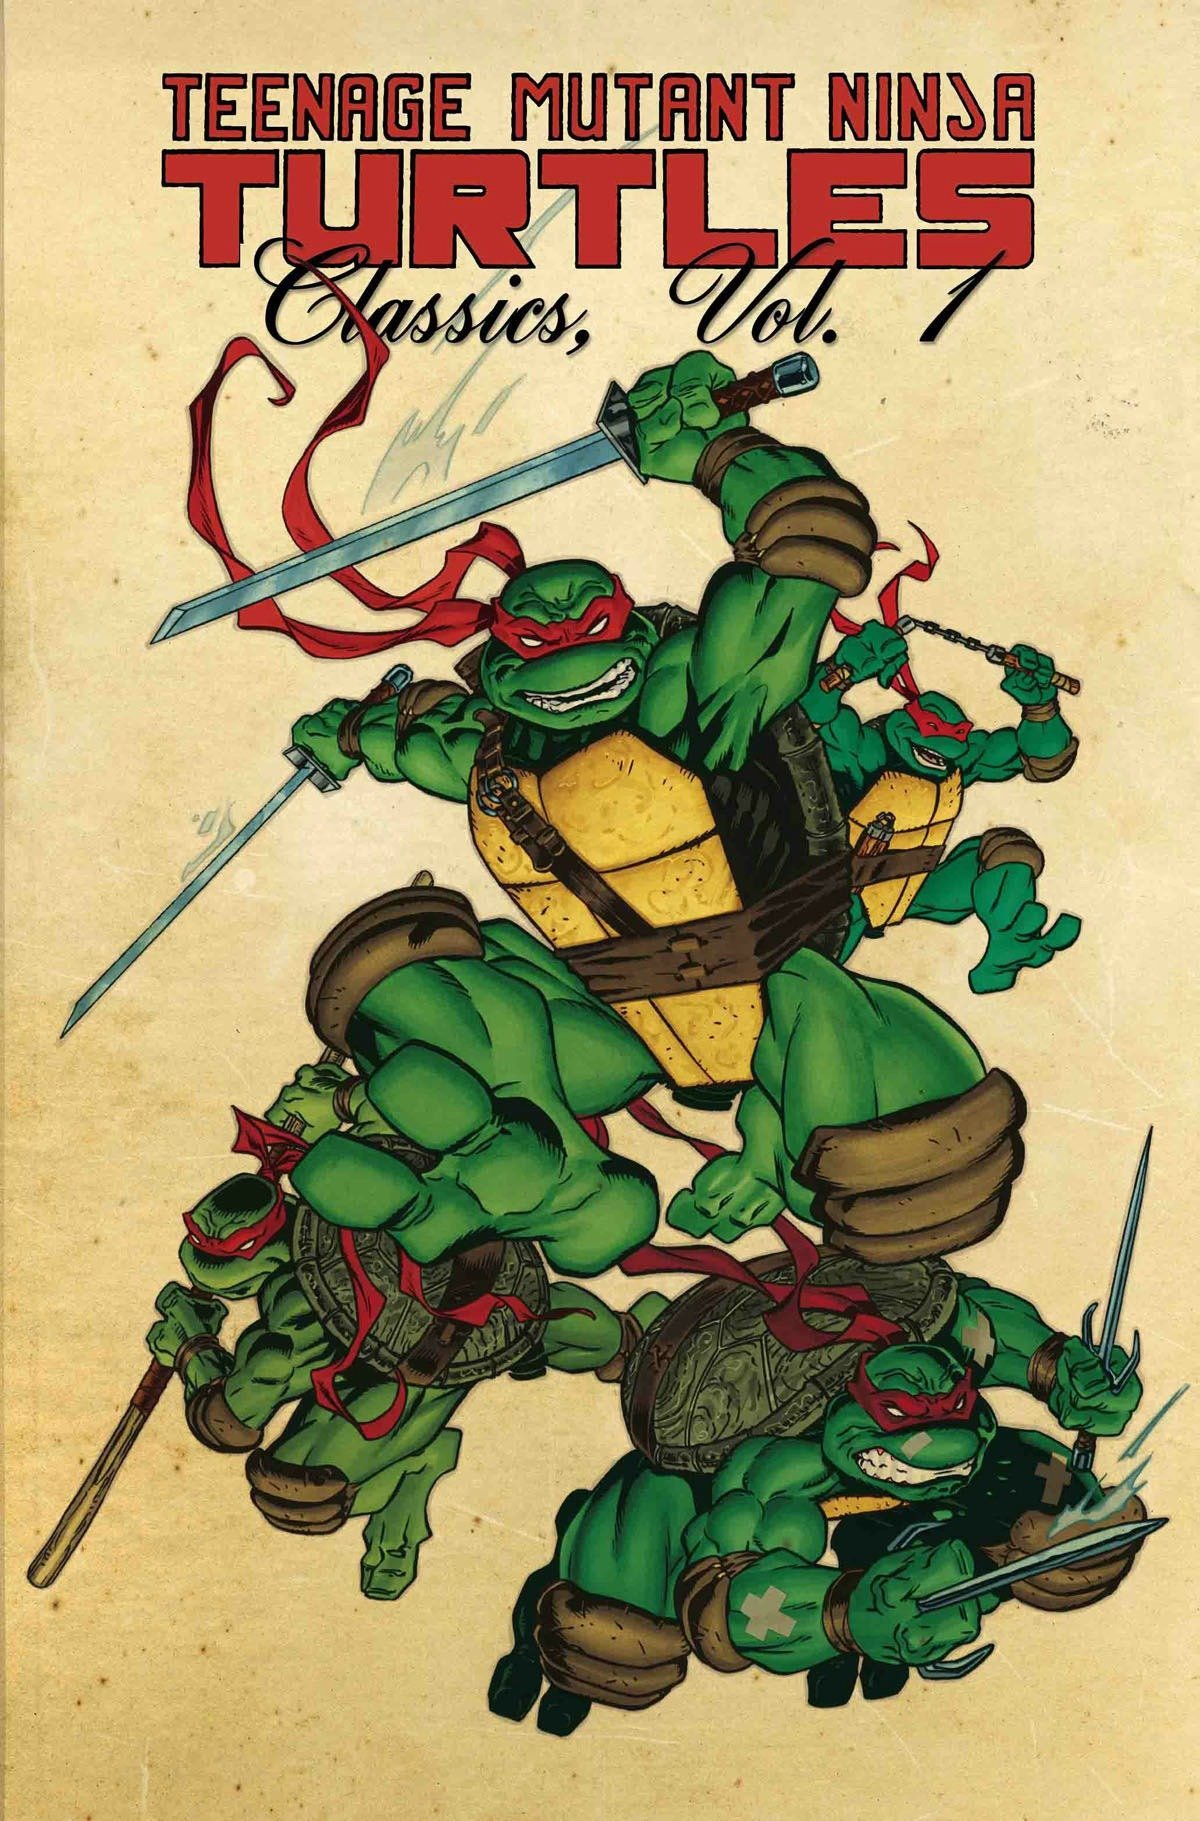 Teenage Mutant Ninja Turtles Classics Volume 1 by Nickelodeon